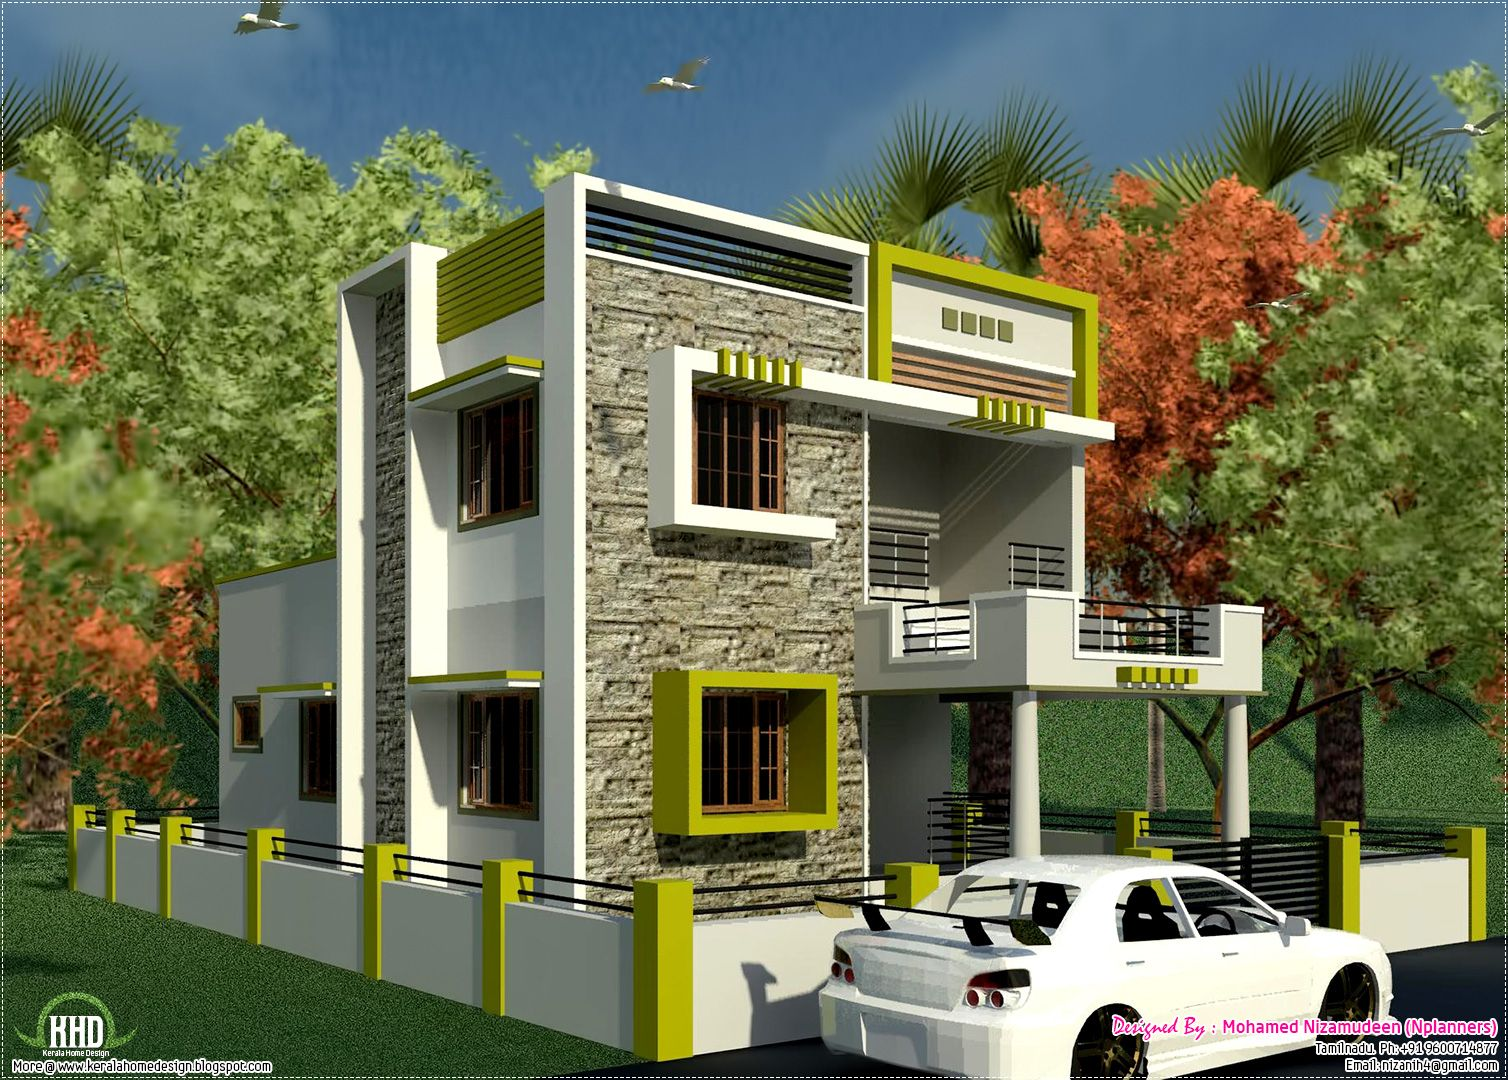 Architecture Design Kerala Model interior plan houses |  modern 1460 sq. feet house design